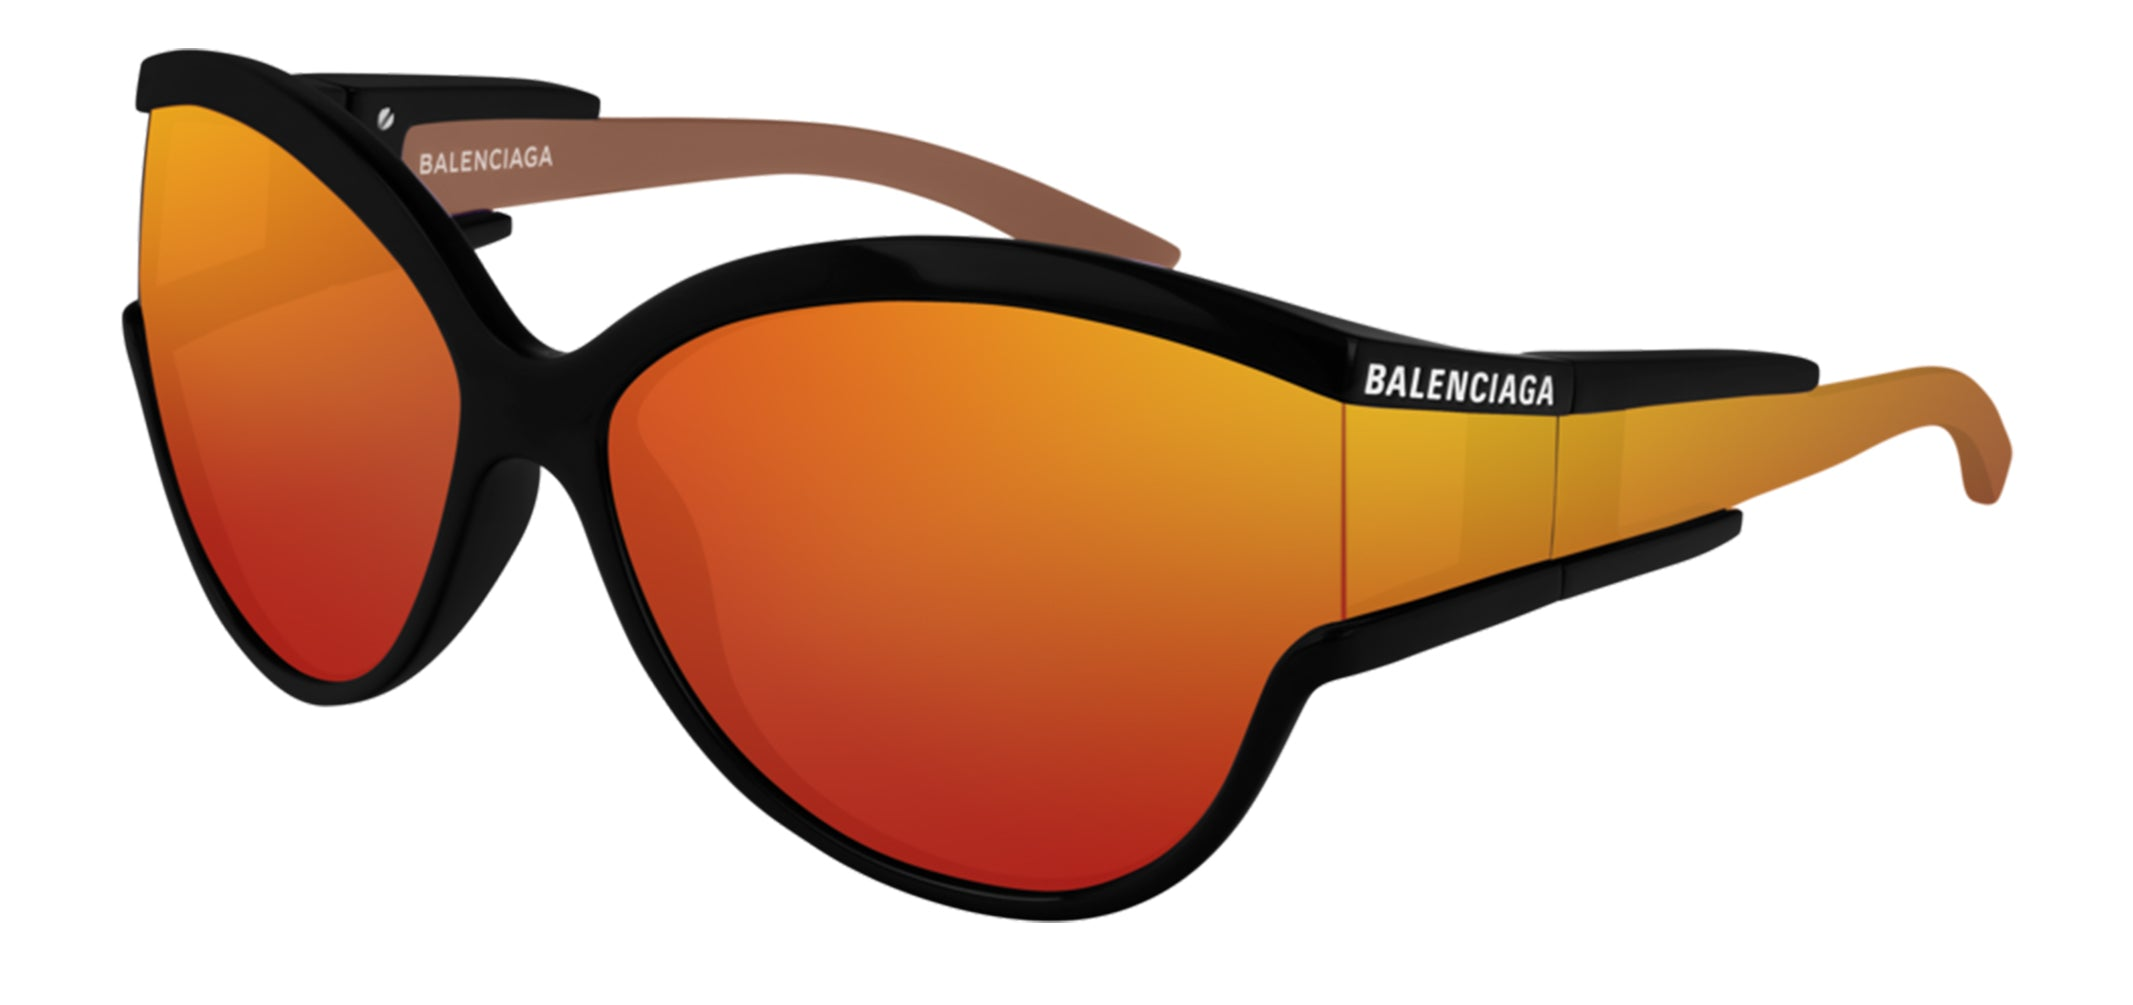 Balenciaga Frame Holly Eyewear 2